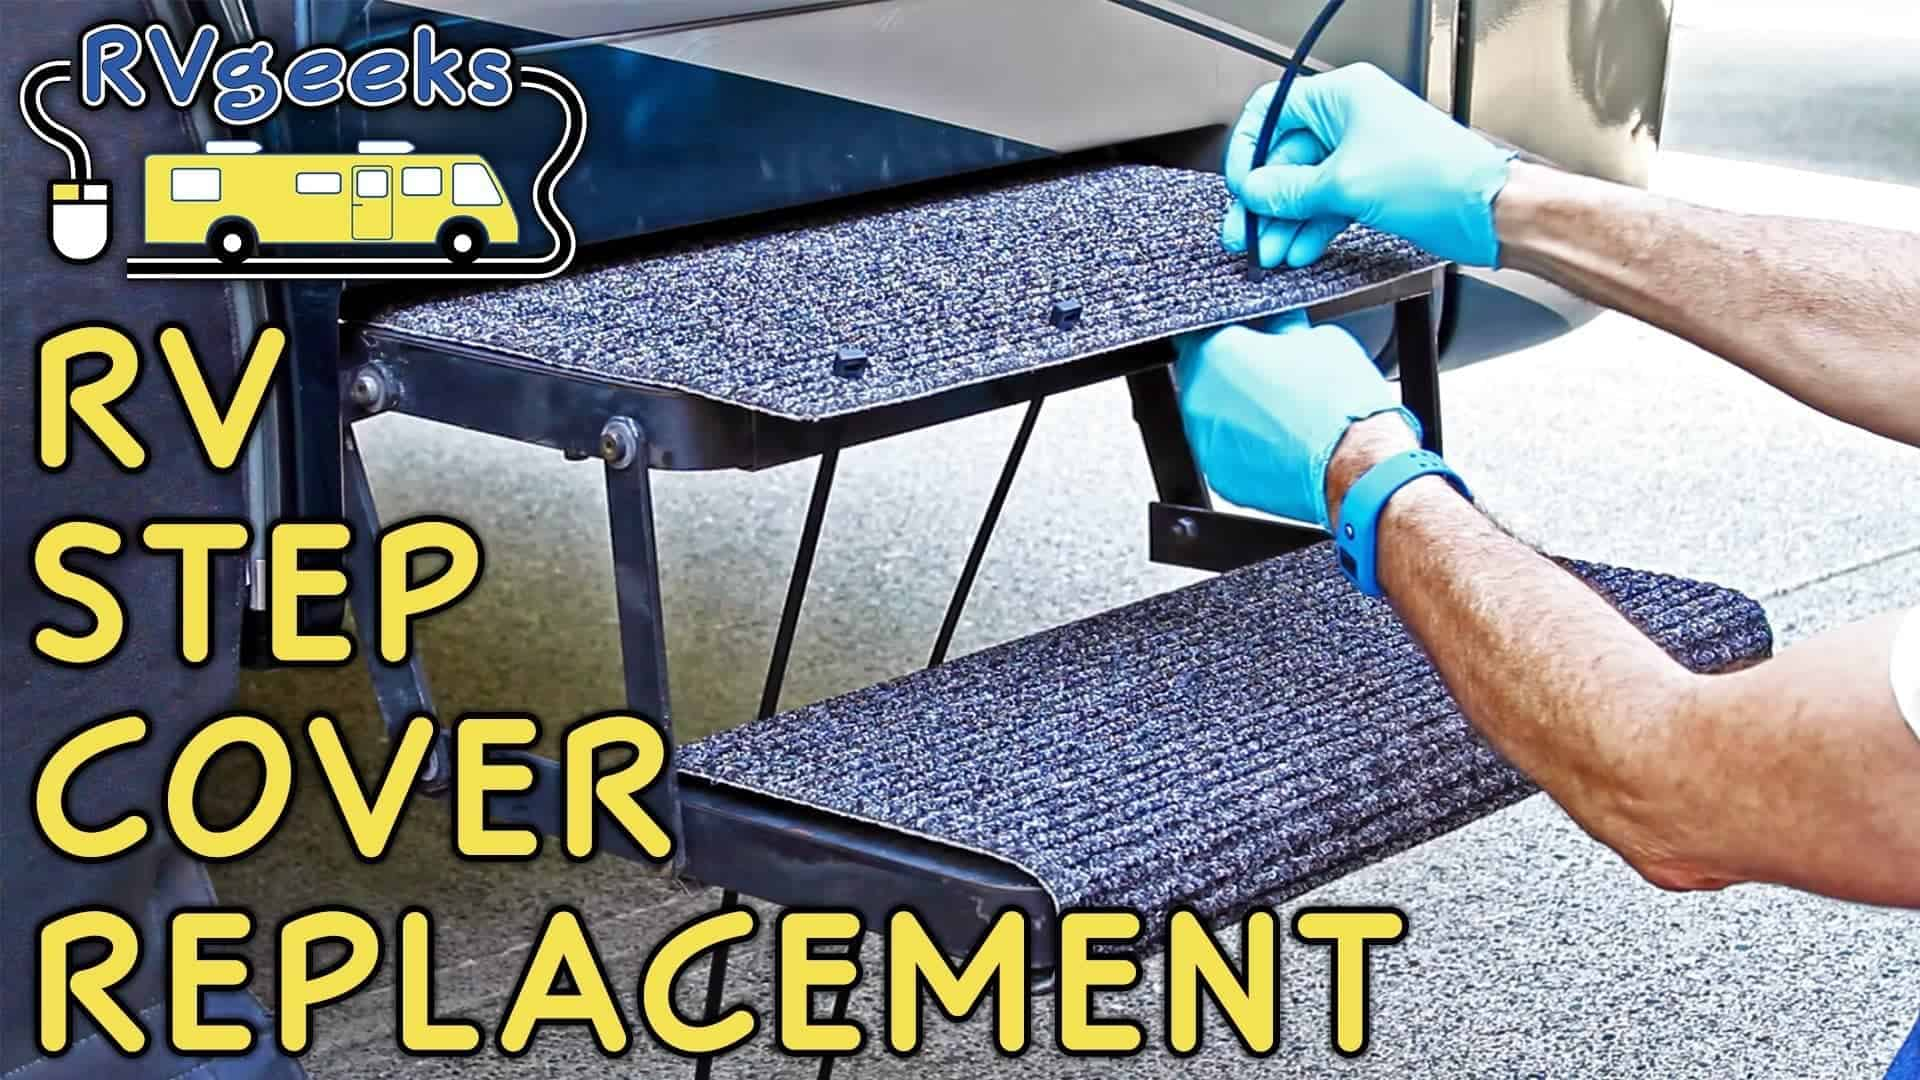 Replacing Rv Step Covers Ruggids Step Rugs